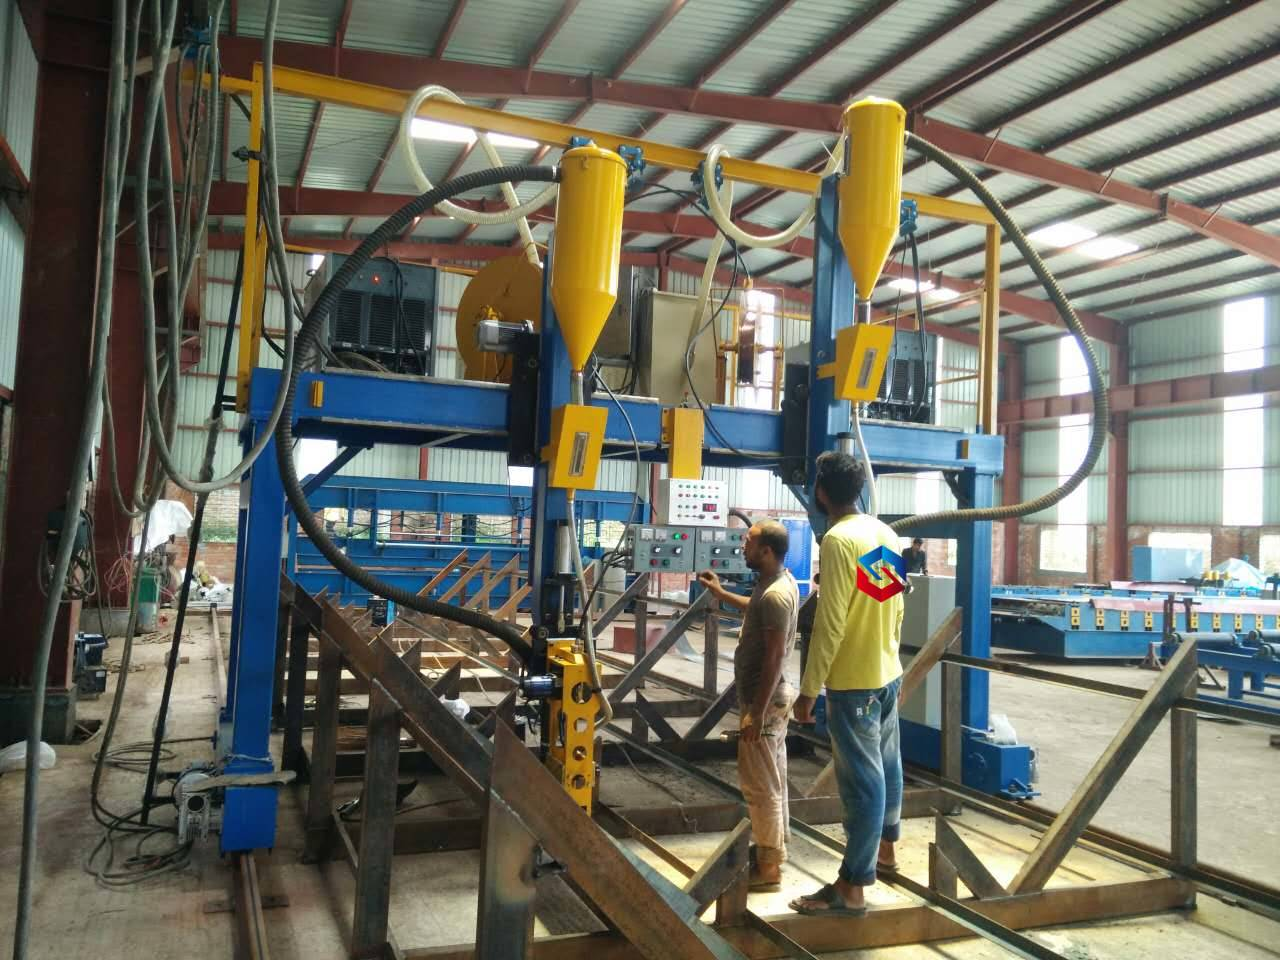 H-Beam Gantry Welding Machine (Submerged Arc Welding) Featured Image